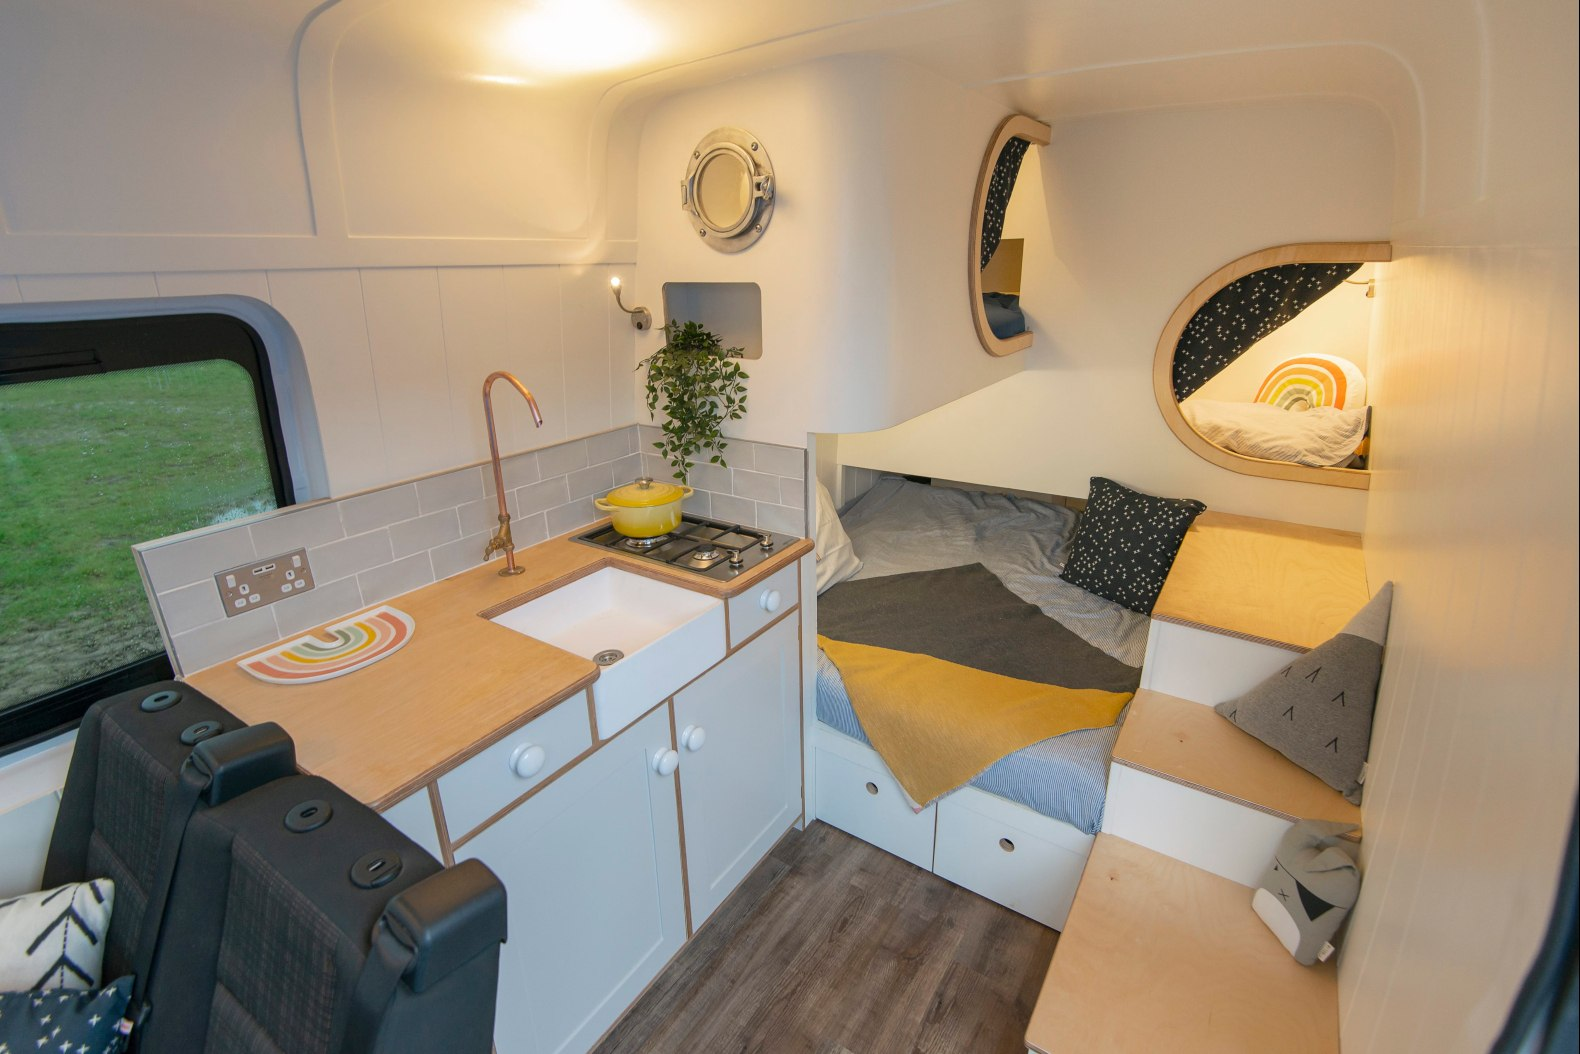 This camper van features not just one, but two sleeping pods in its cozy interior